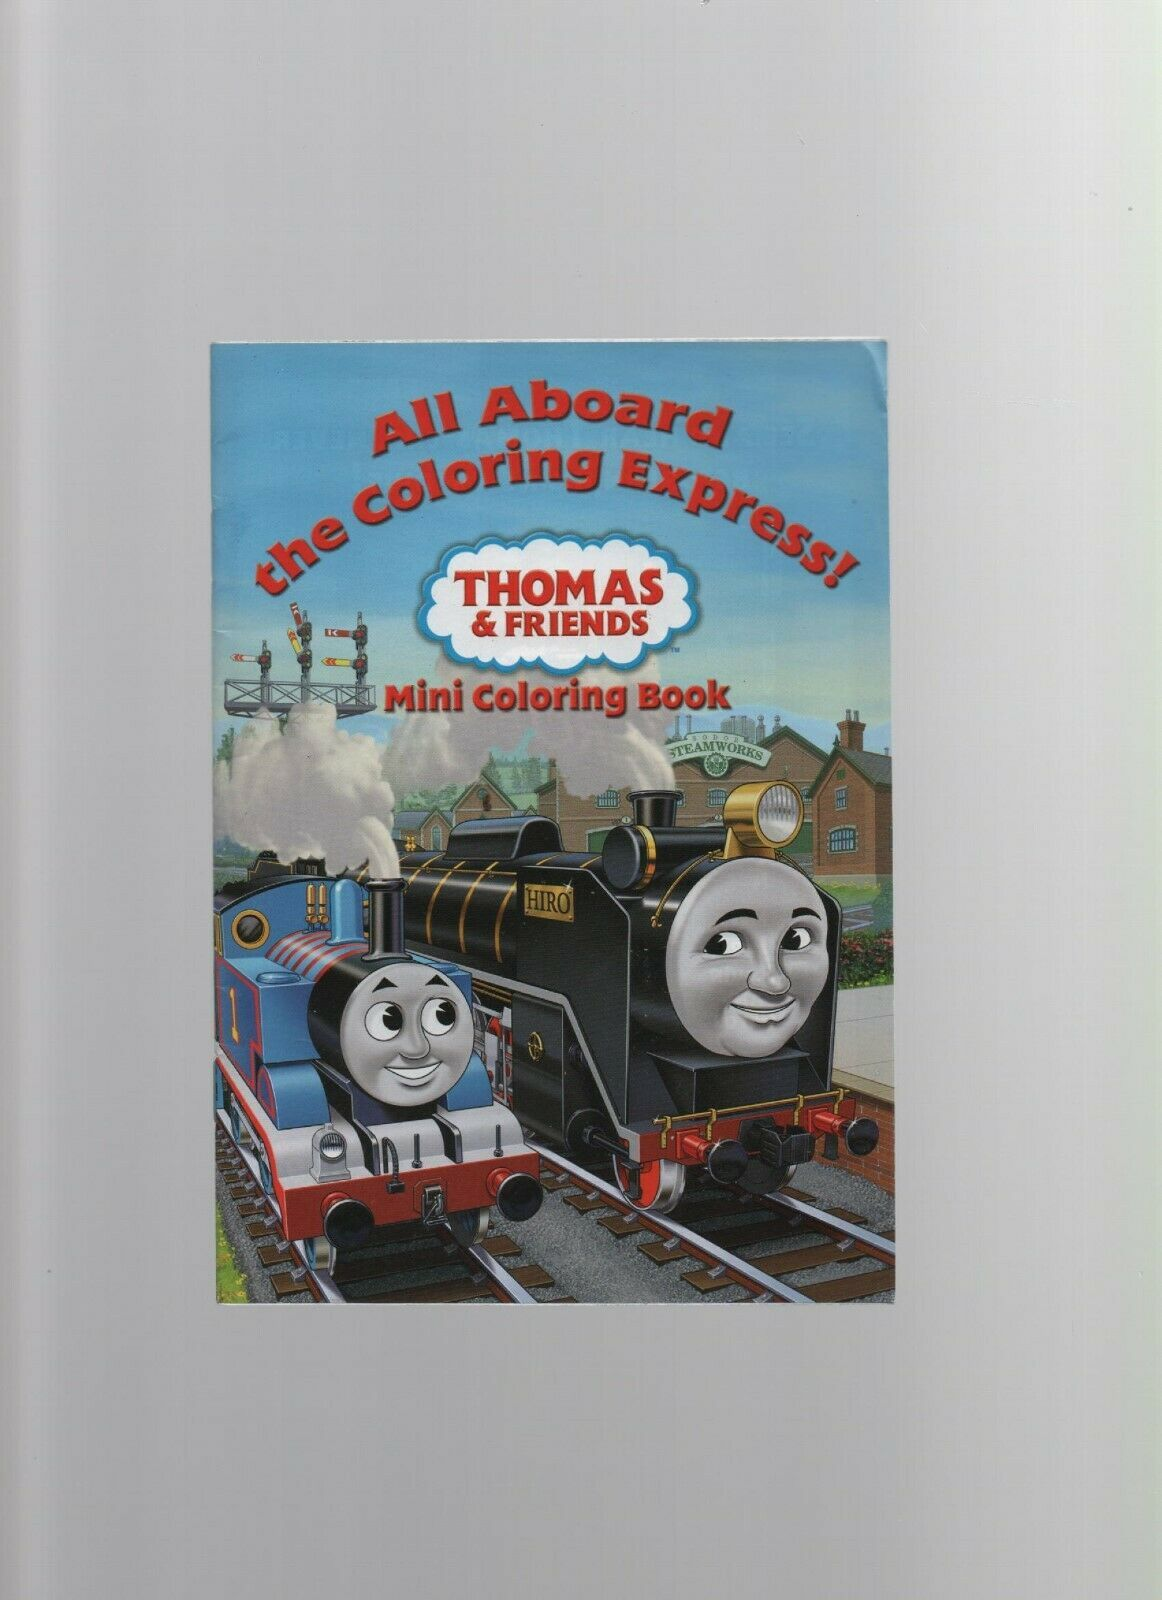 Primary image for Thomas & Friends Mini-Coloring Book - Coloring Express! - SC - 2009 - HIT Enter.